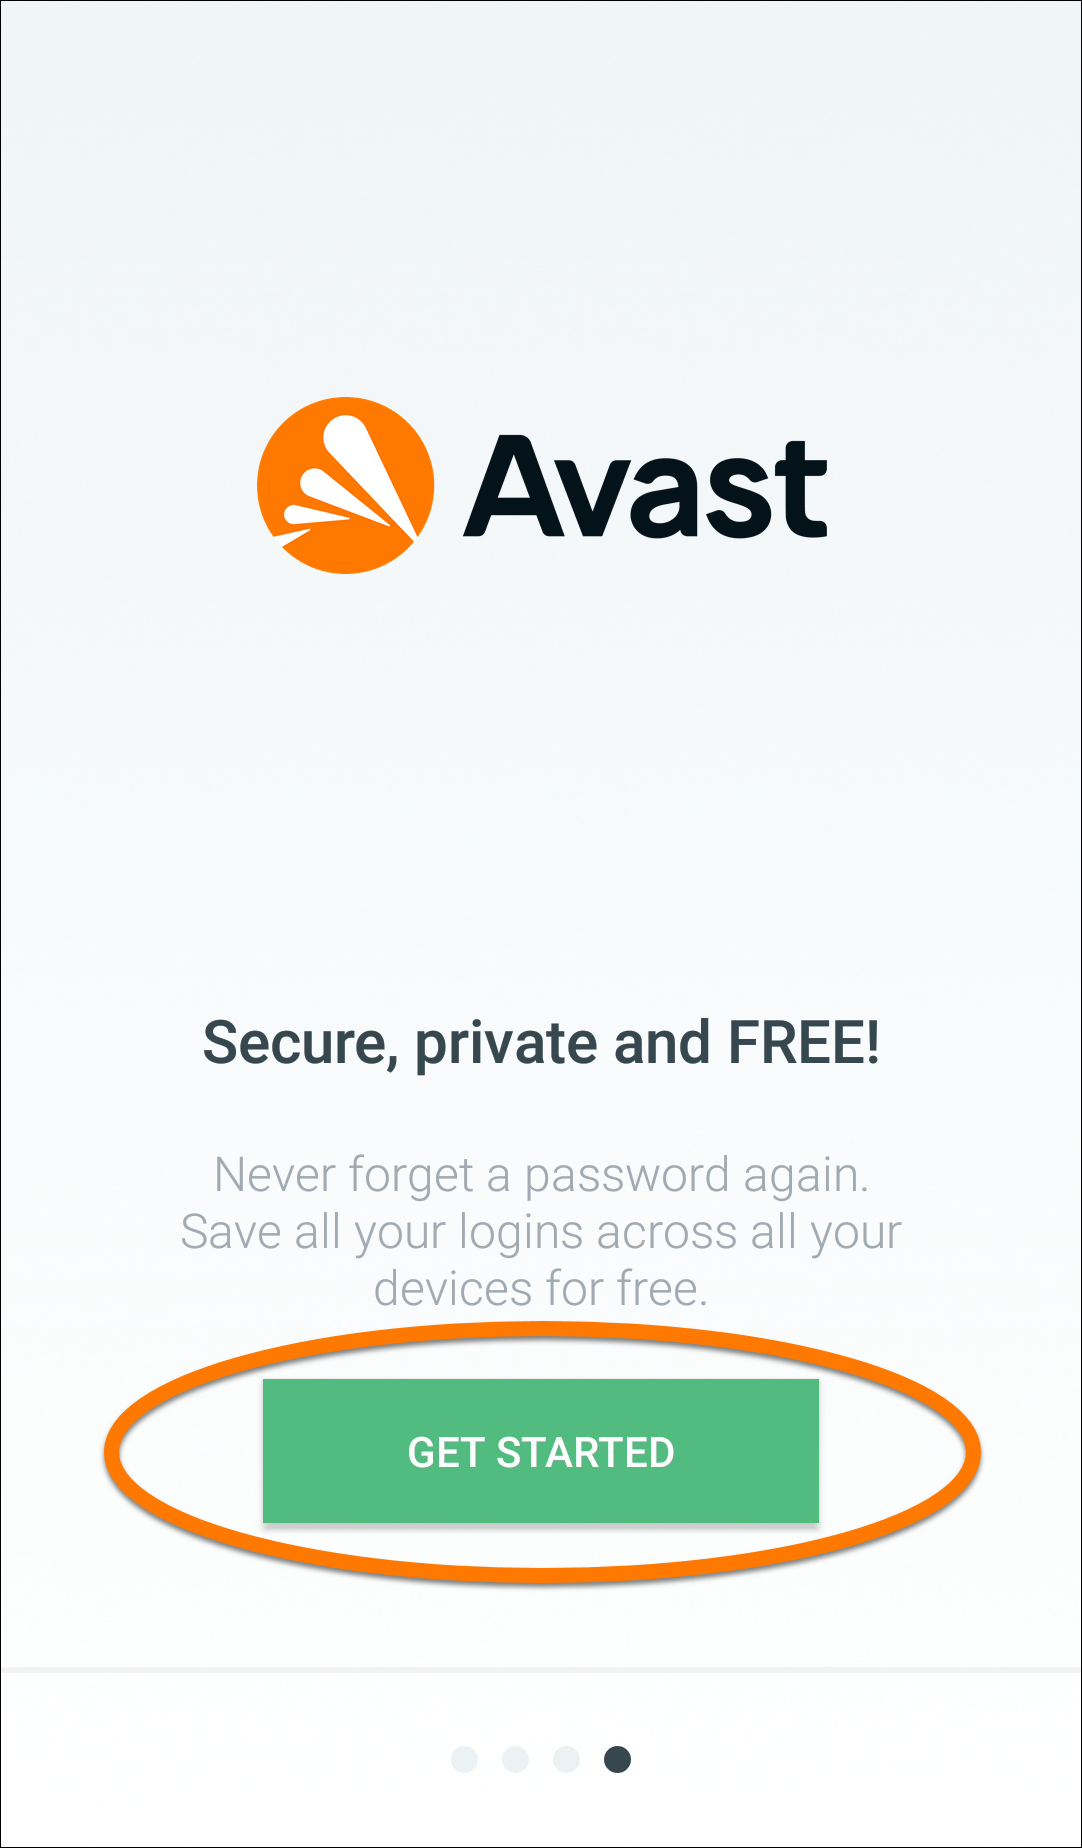 Avast Passwords for Android and iOS - Getting Started